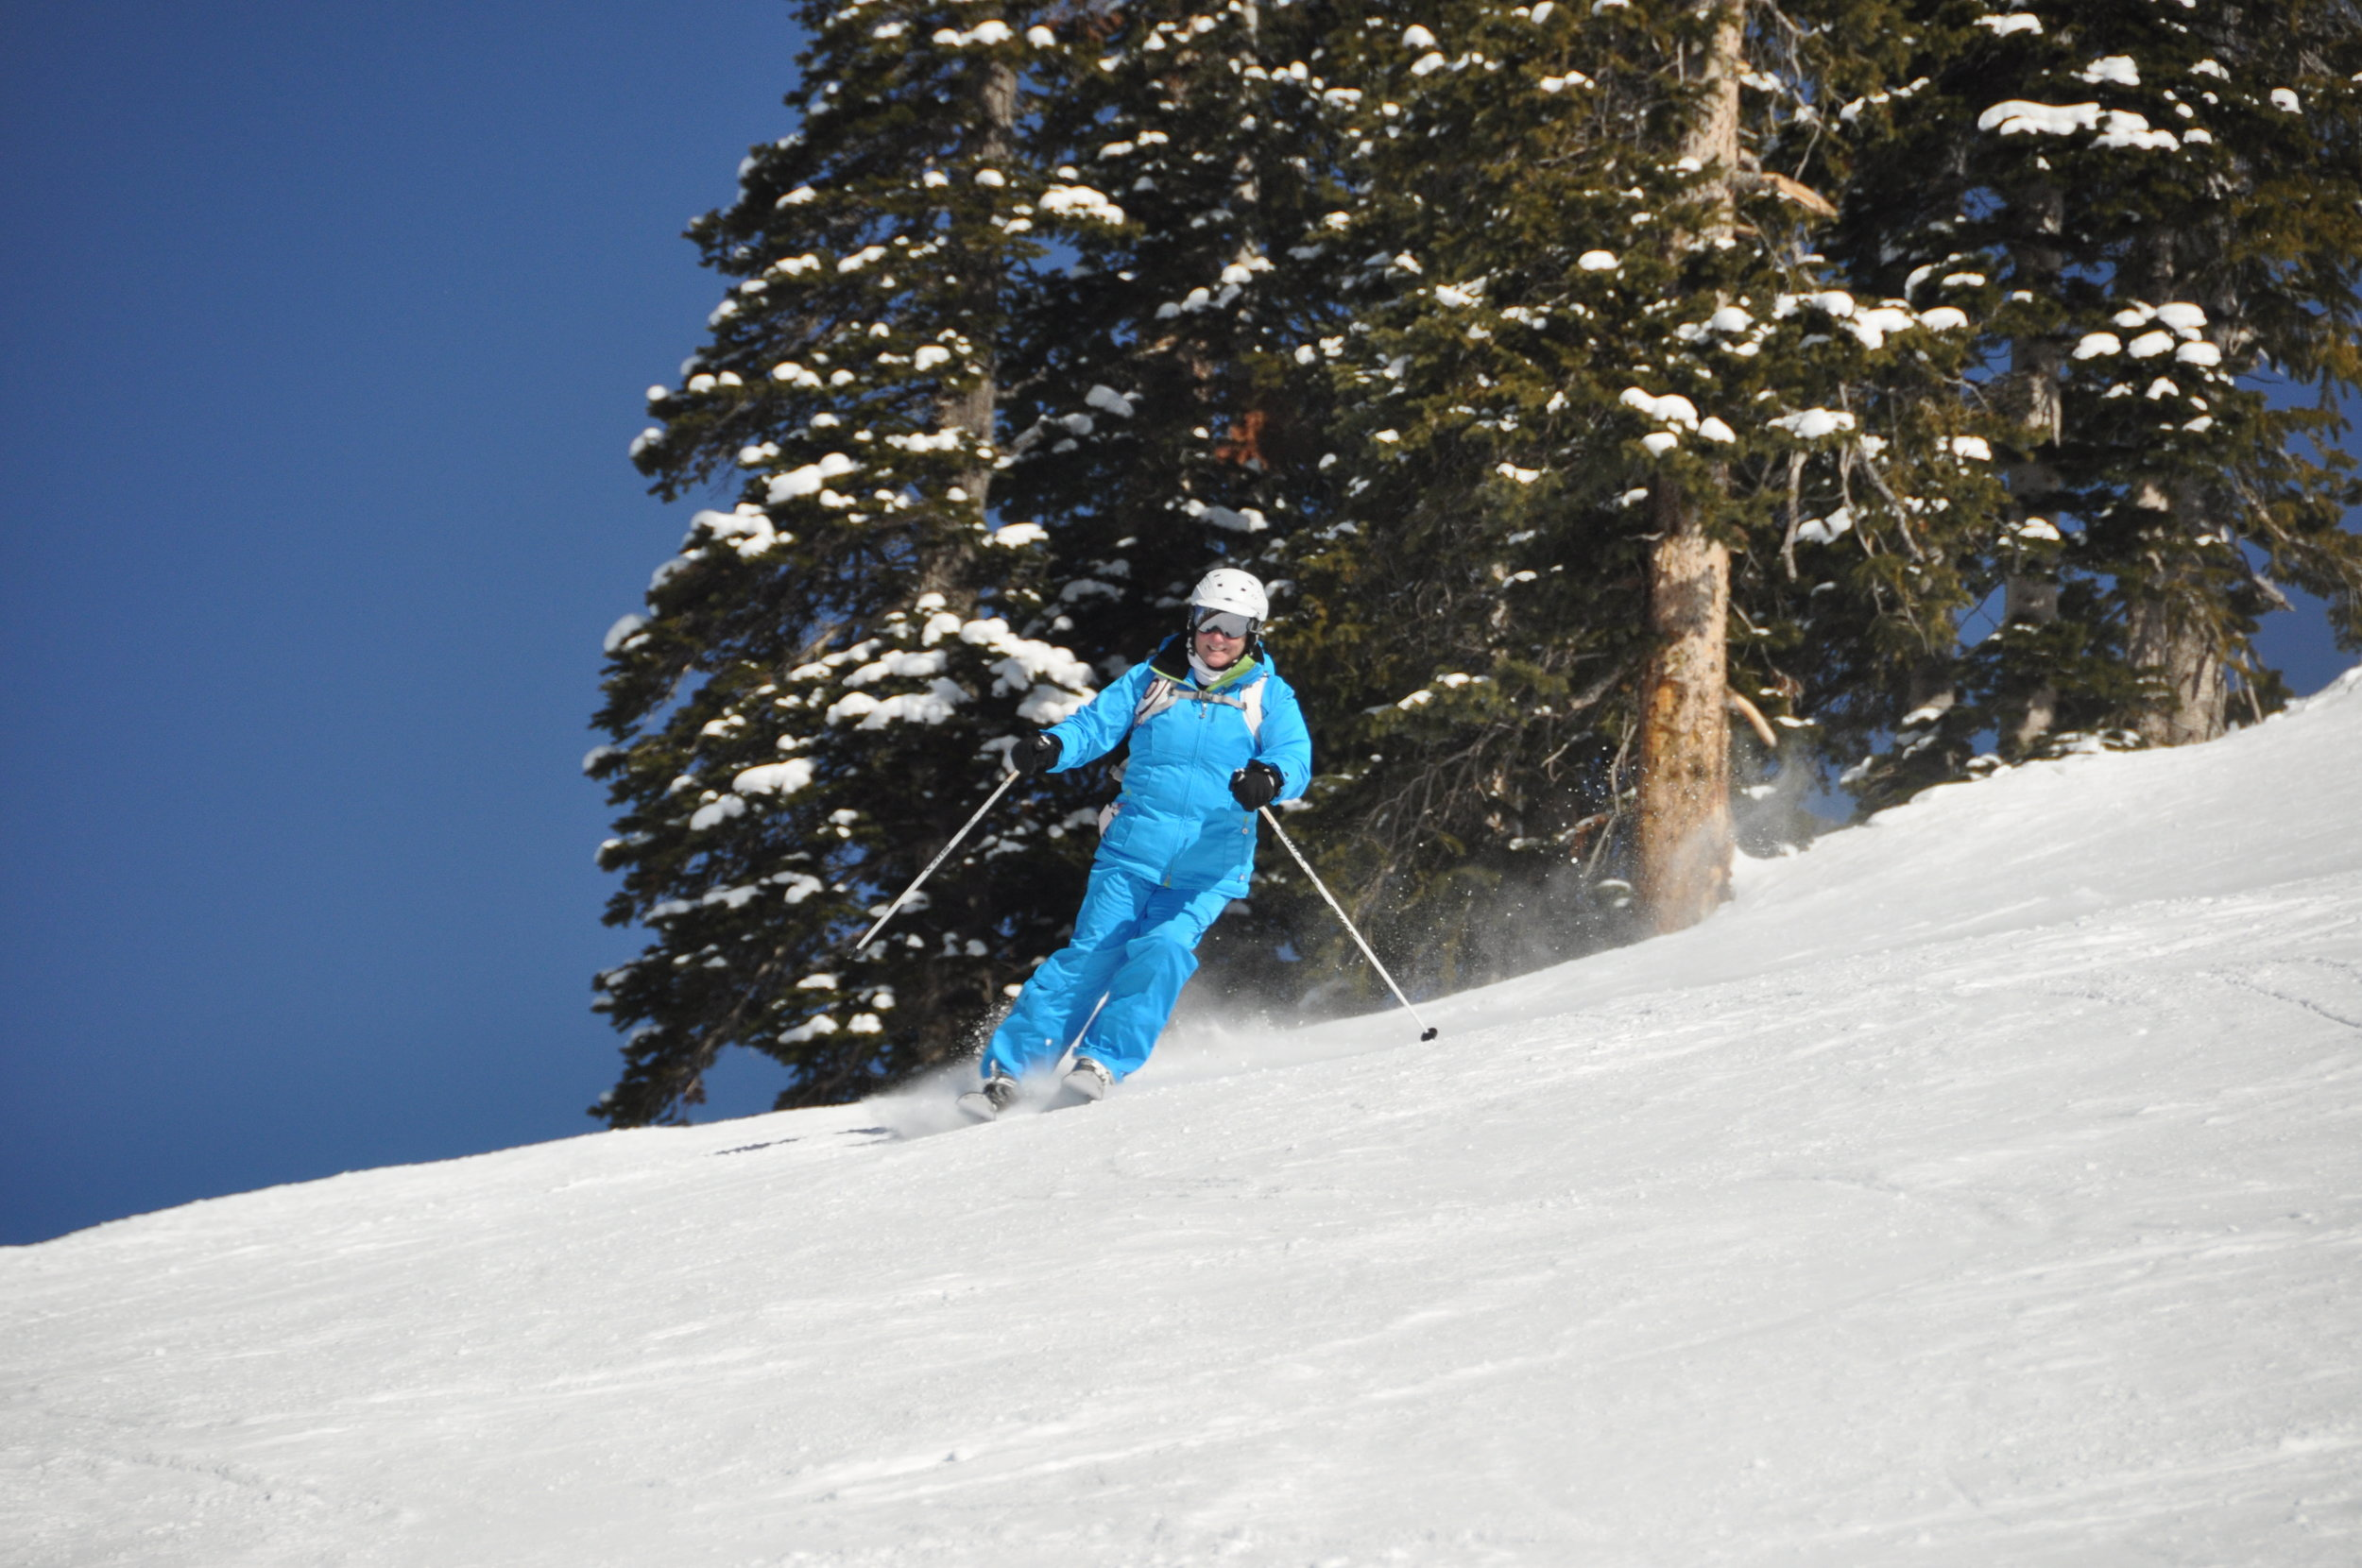 Jennifer is happy skiing perfect groomers and fresh powder on corduroy all day long